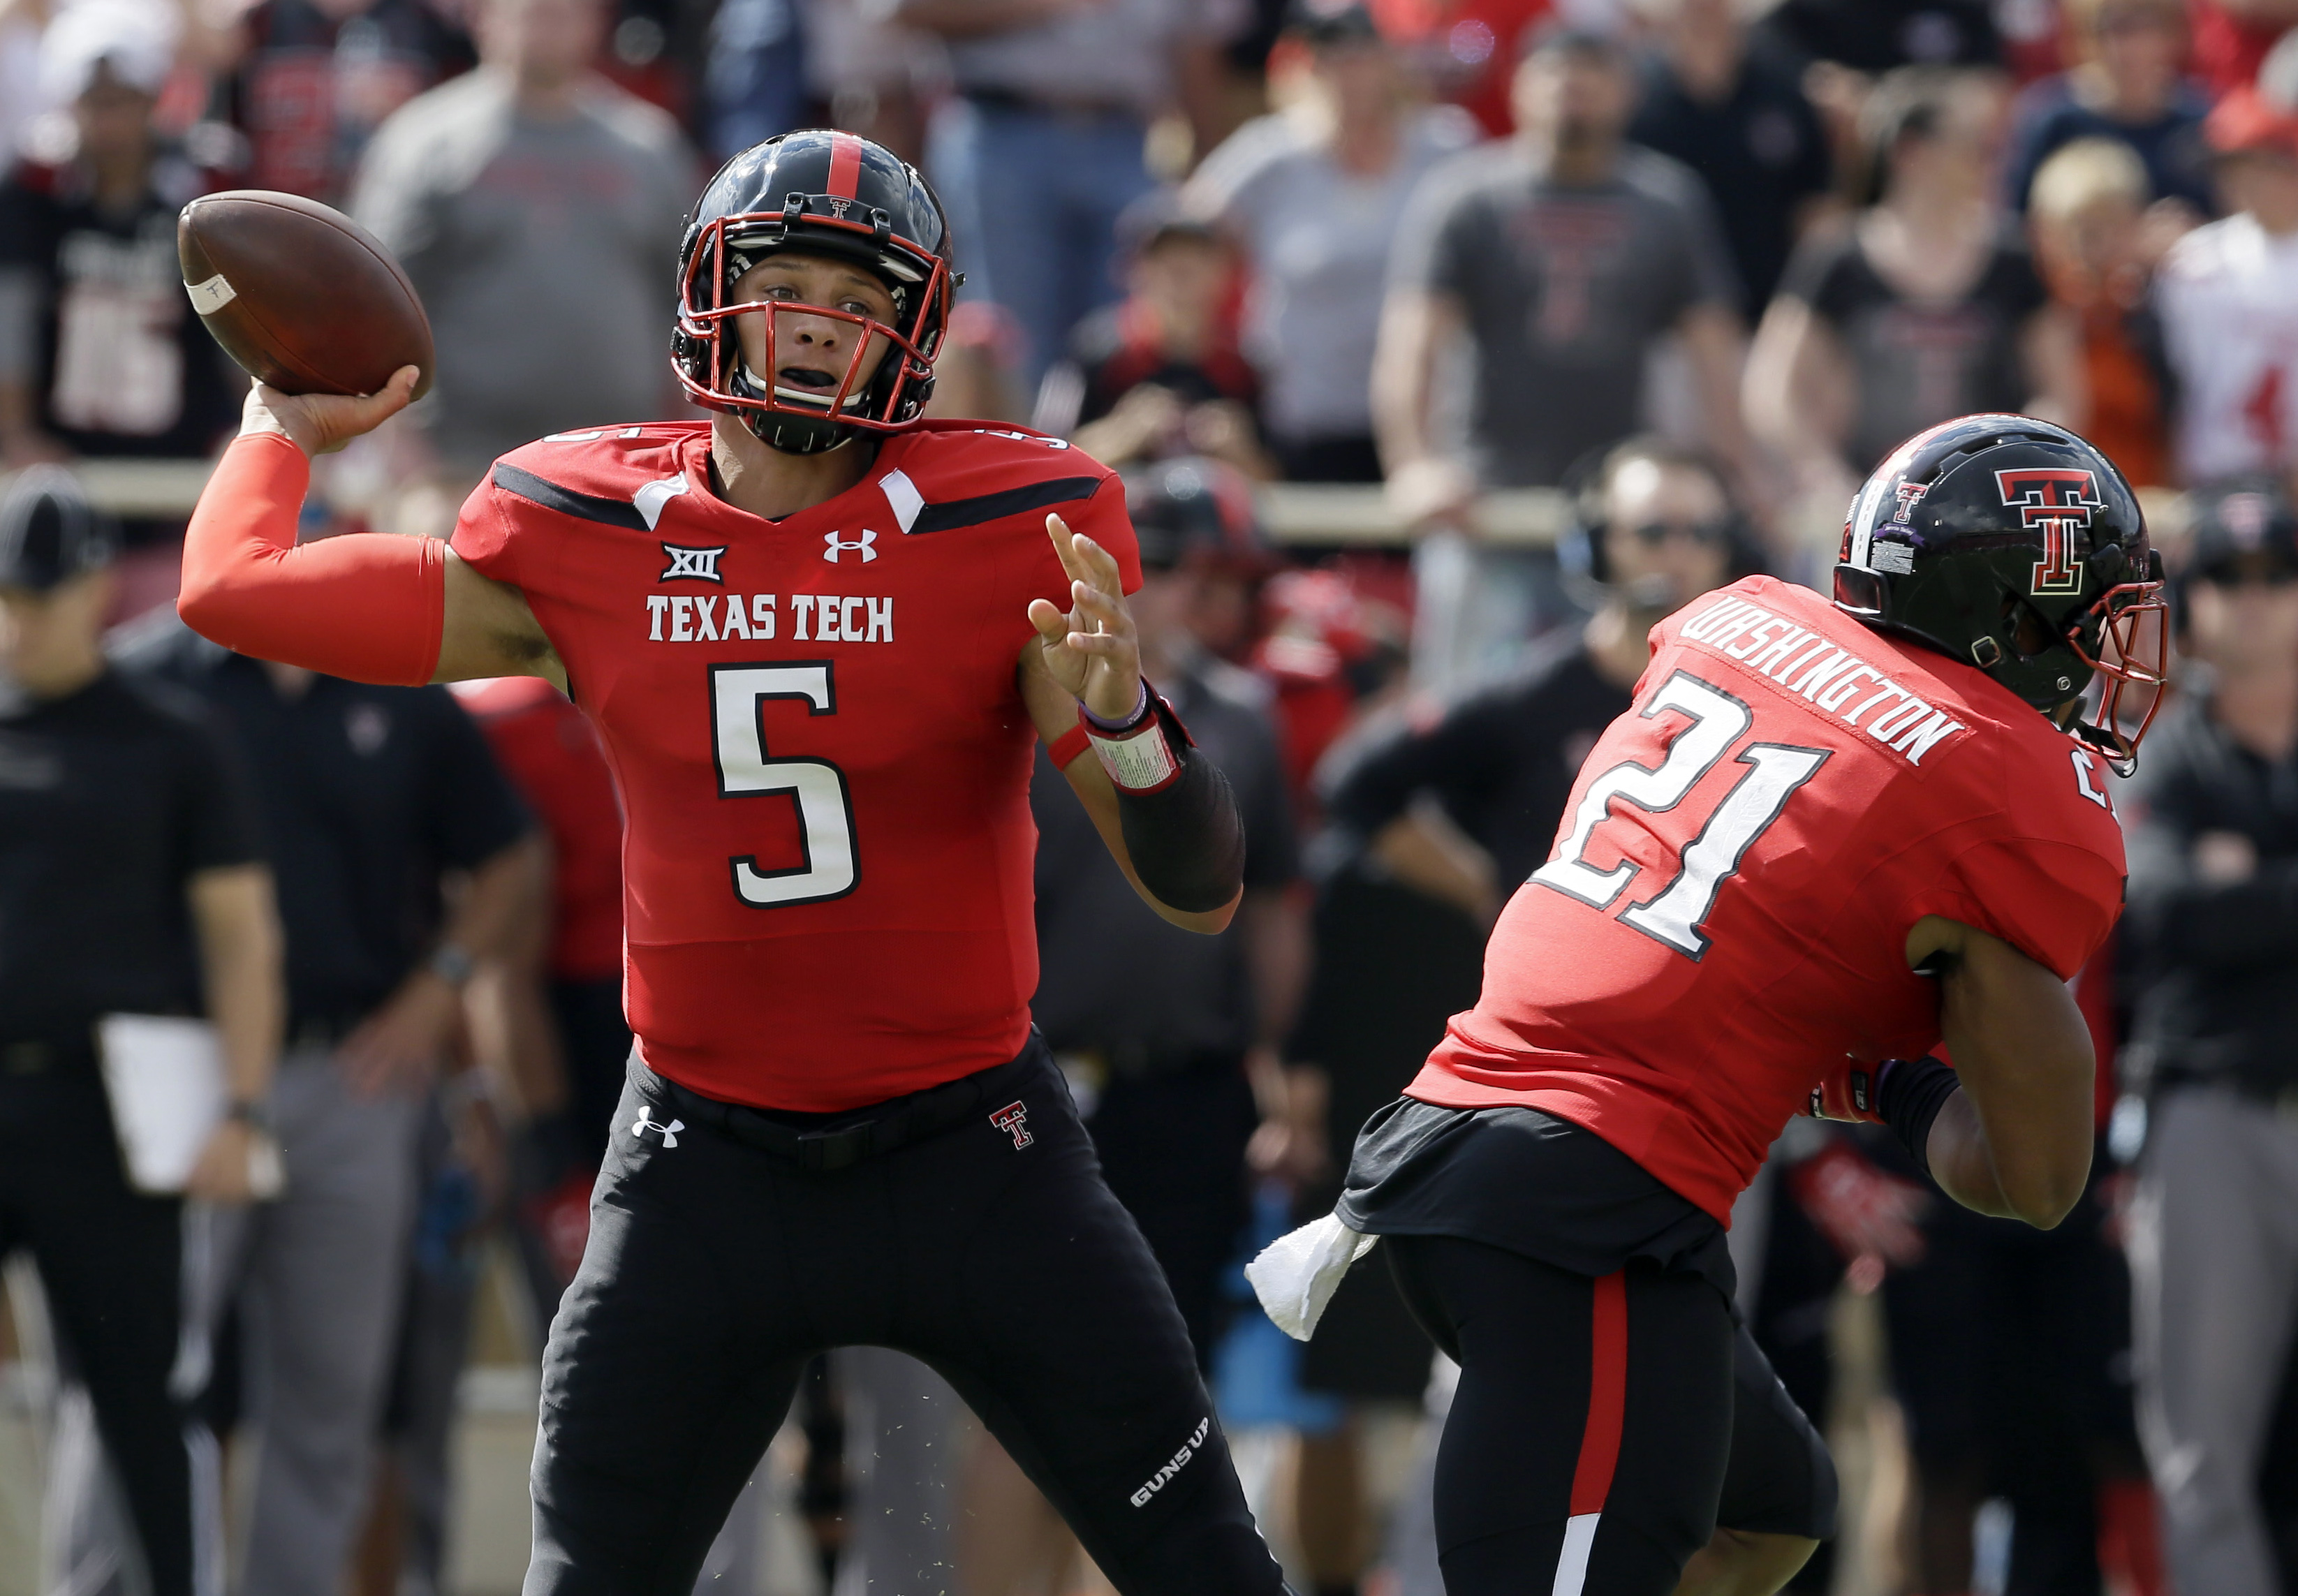 Texas Tech quarterback Patrick Mahomes (5) passes as running back DeAndre Washington (21) runs past during the first half of an NCAA college football game against TCU, Saturday, Sept. 26, 2015, in Lubbock, Texas. (AP Photo/LM Otero)